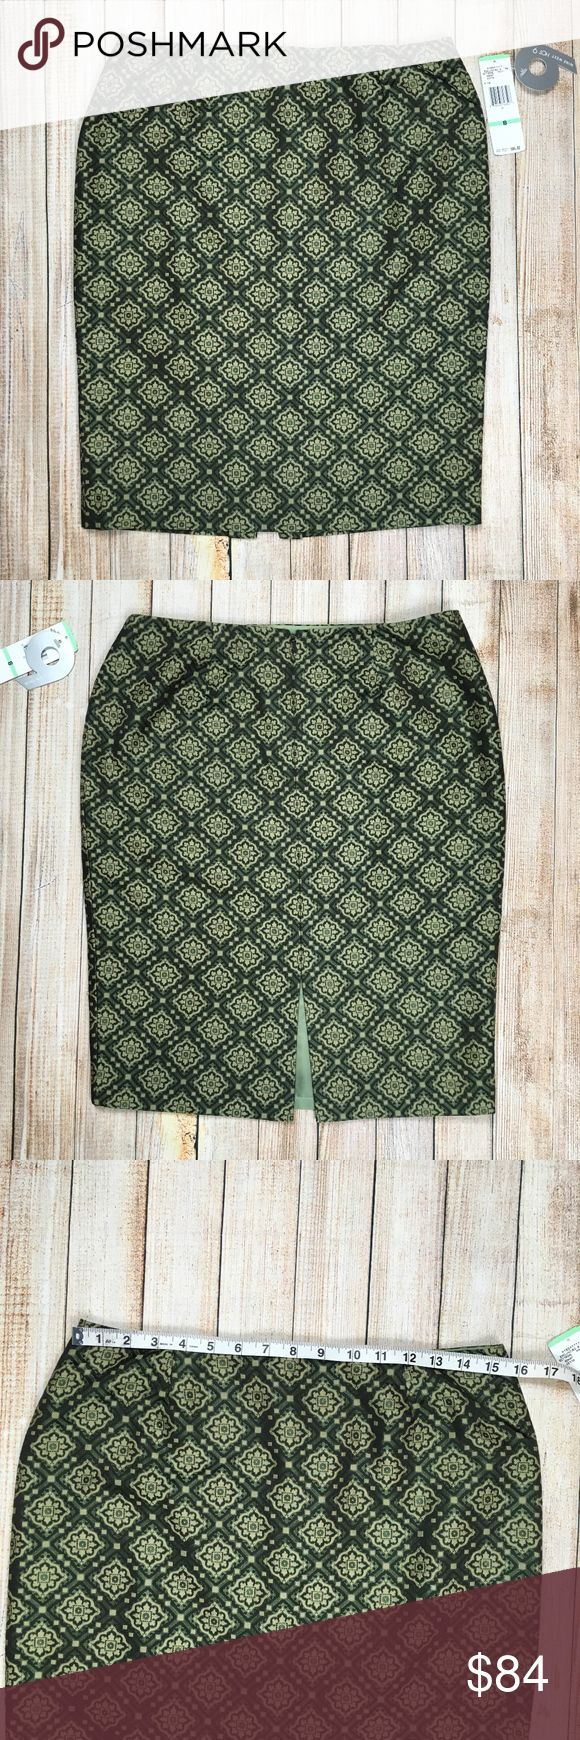 Nine West diamond pattern pencil skirt in green Nine West diamond pattern pencil skirt in shades of green. Gorgeous and slightly metallic sateen material, this skirt is a stand out! Dress it up for the office or down for a casual brunch, it's very versatile.   Silk blend.   Approximate measurements provided in photos.   OFFERS ENCOURAGED!  Tags: Hot 9, exclusives, fitted, sexy, girly, flirty, office, statement Nine West Skirts Pencil